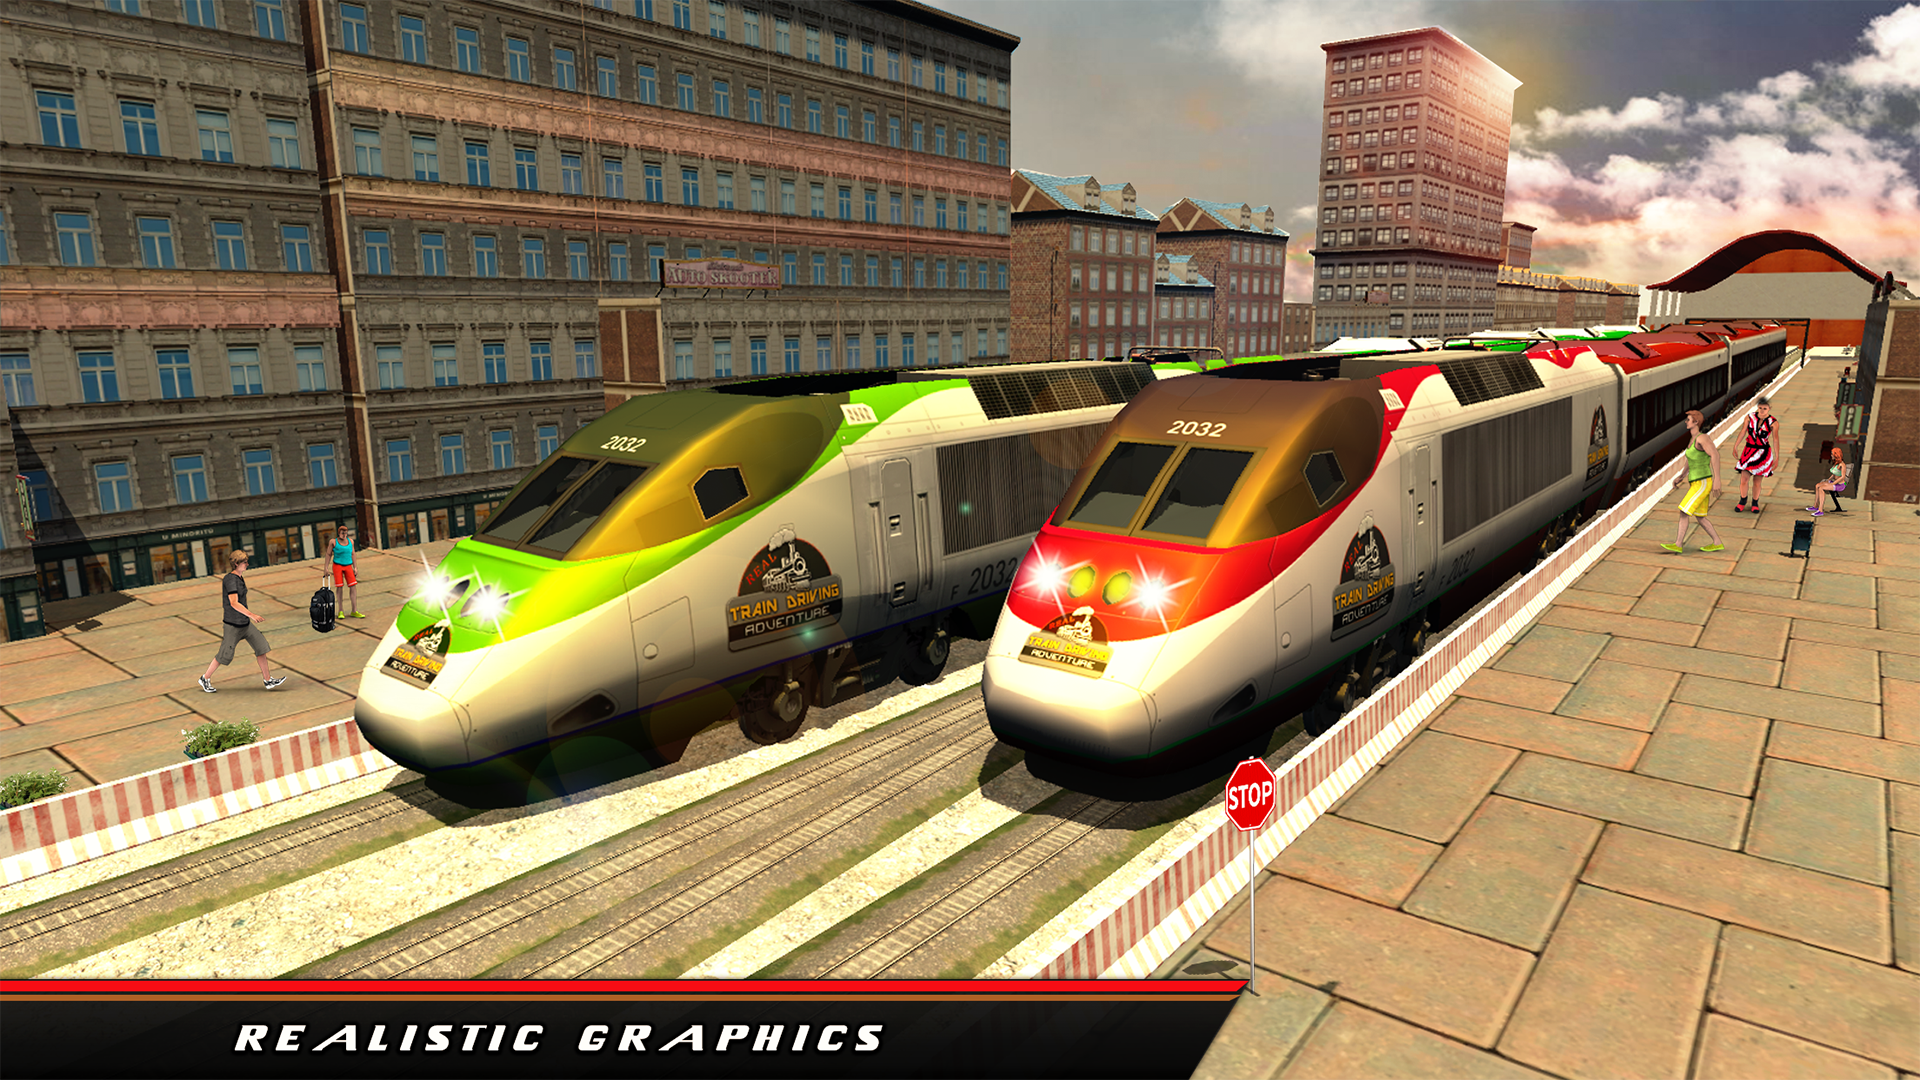 Train Engine Simulator Games Free - Driving Games: Amazon.es: Appstore para Android